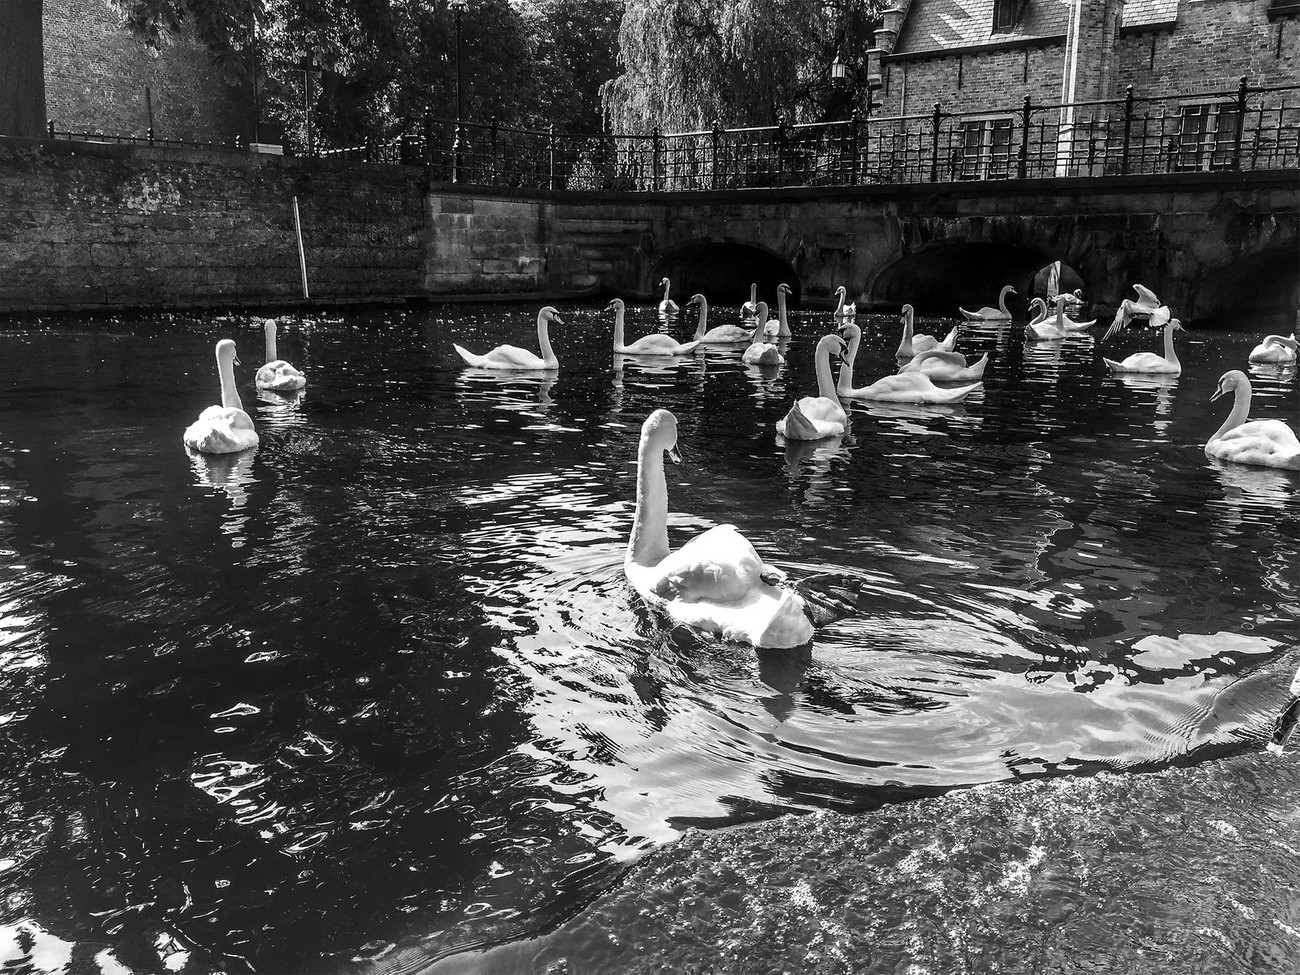 A flock of swans gather near a bridge on a canal in Bruges, Belgium